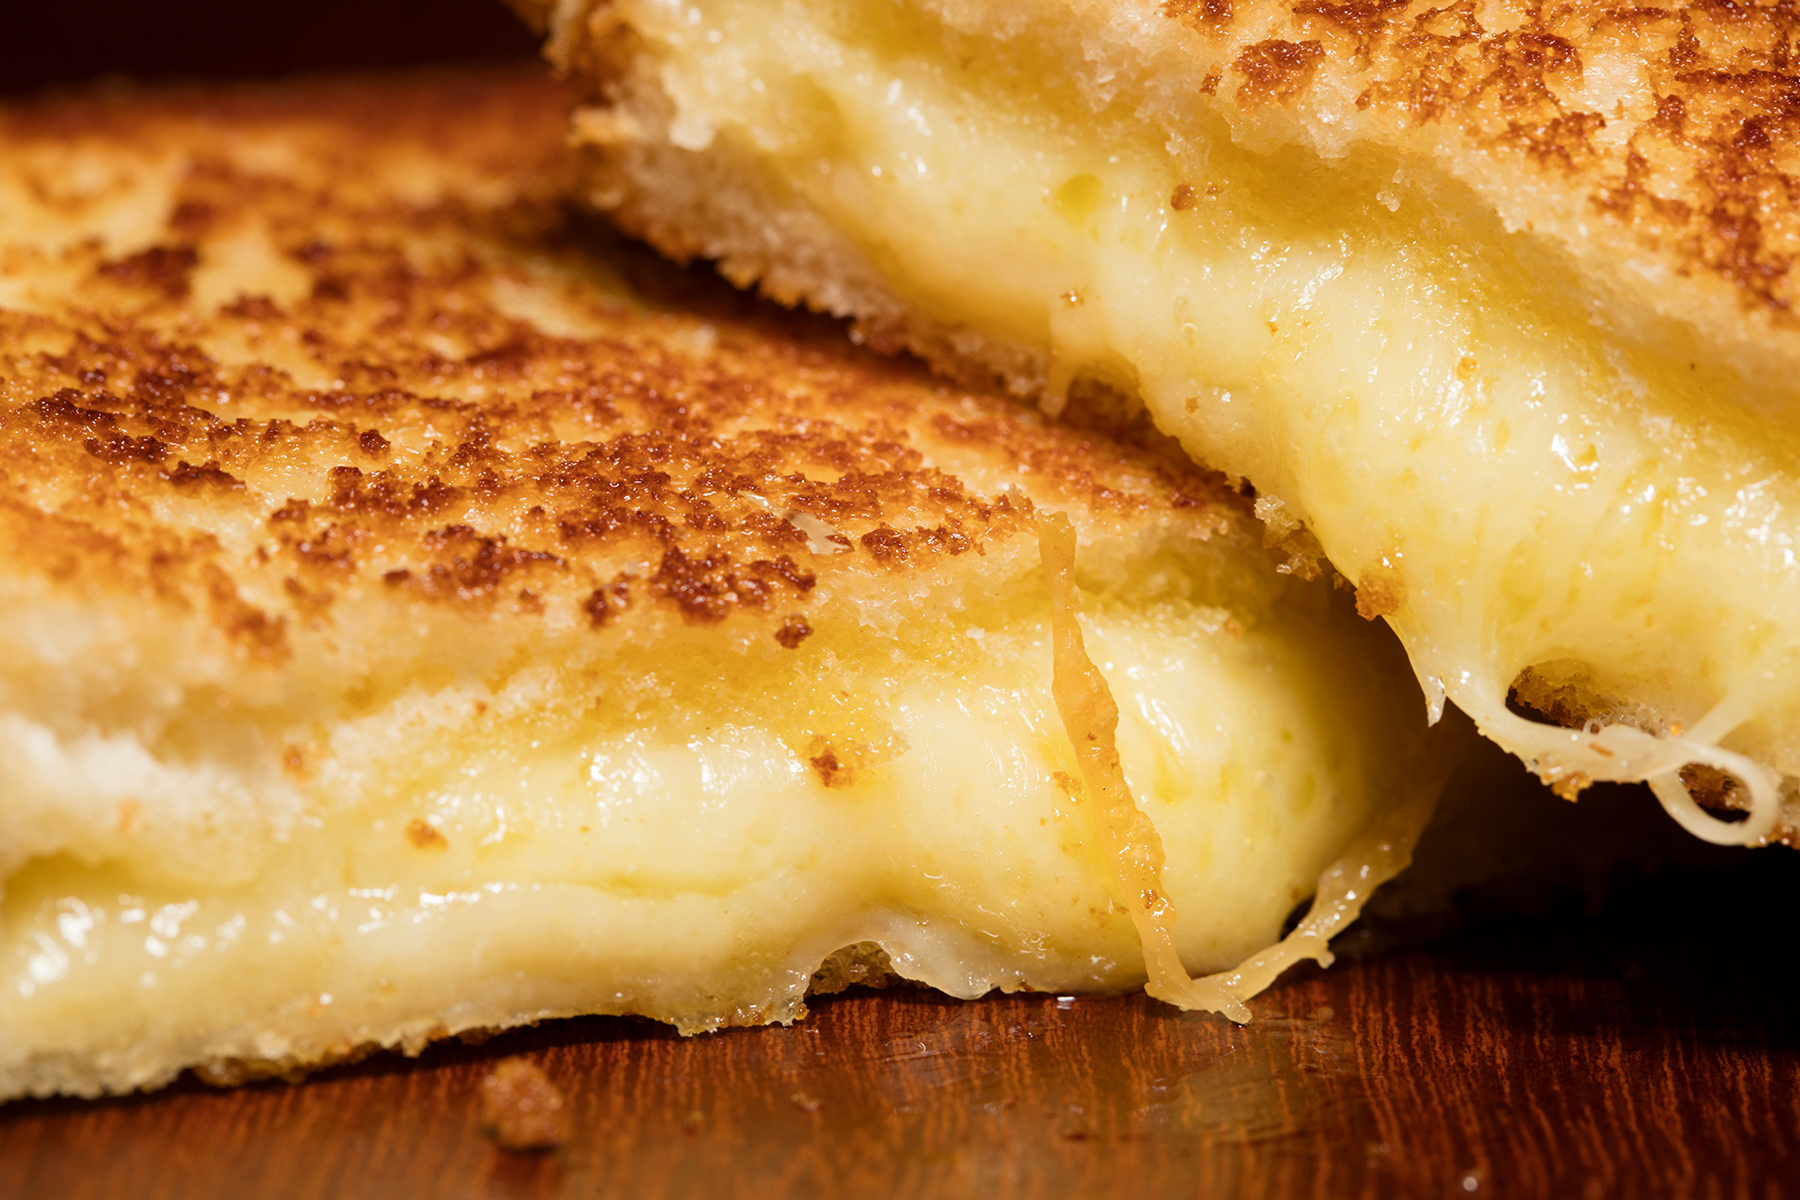 Up-Close Grilled Cheese Sandwich